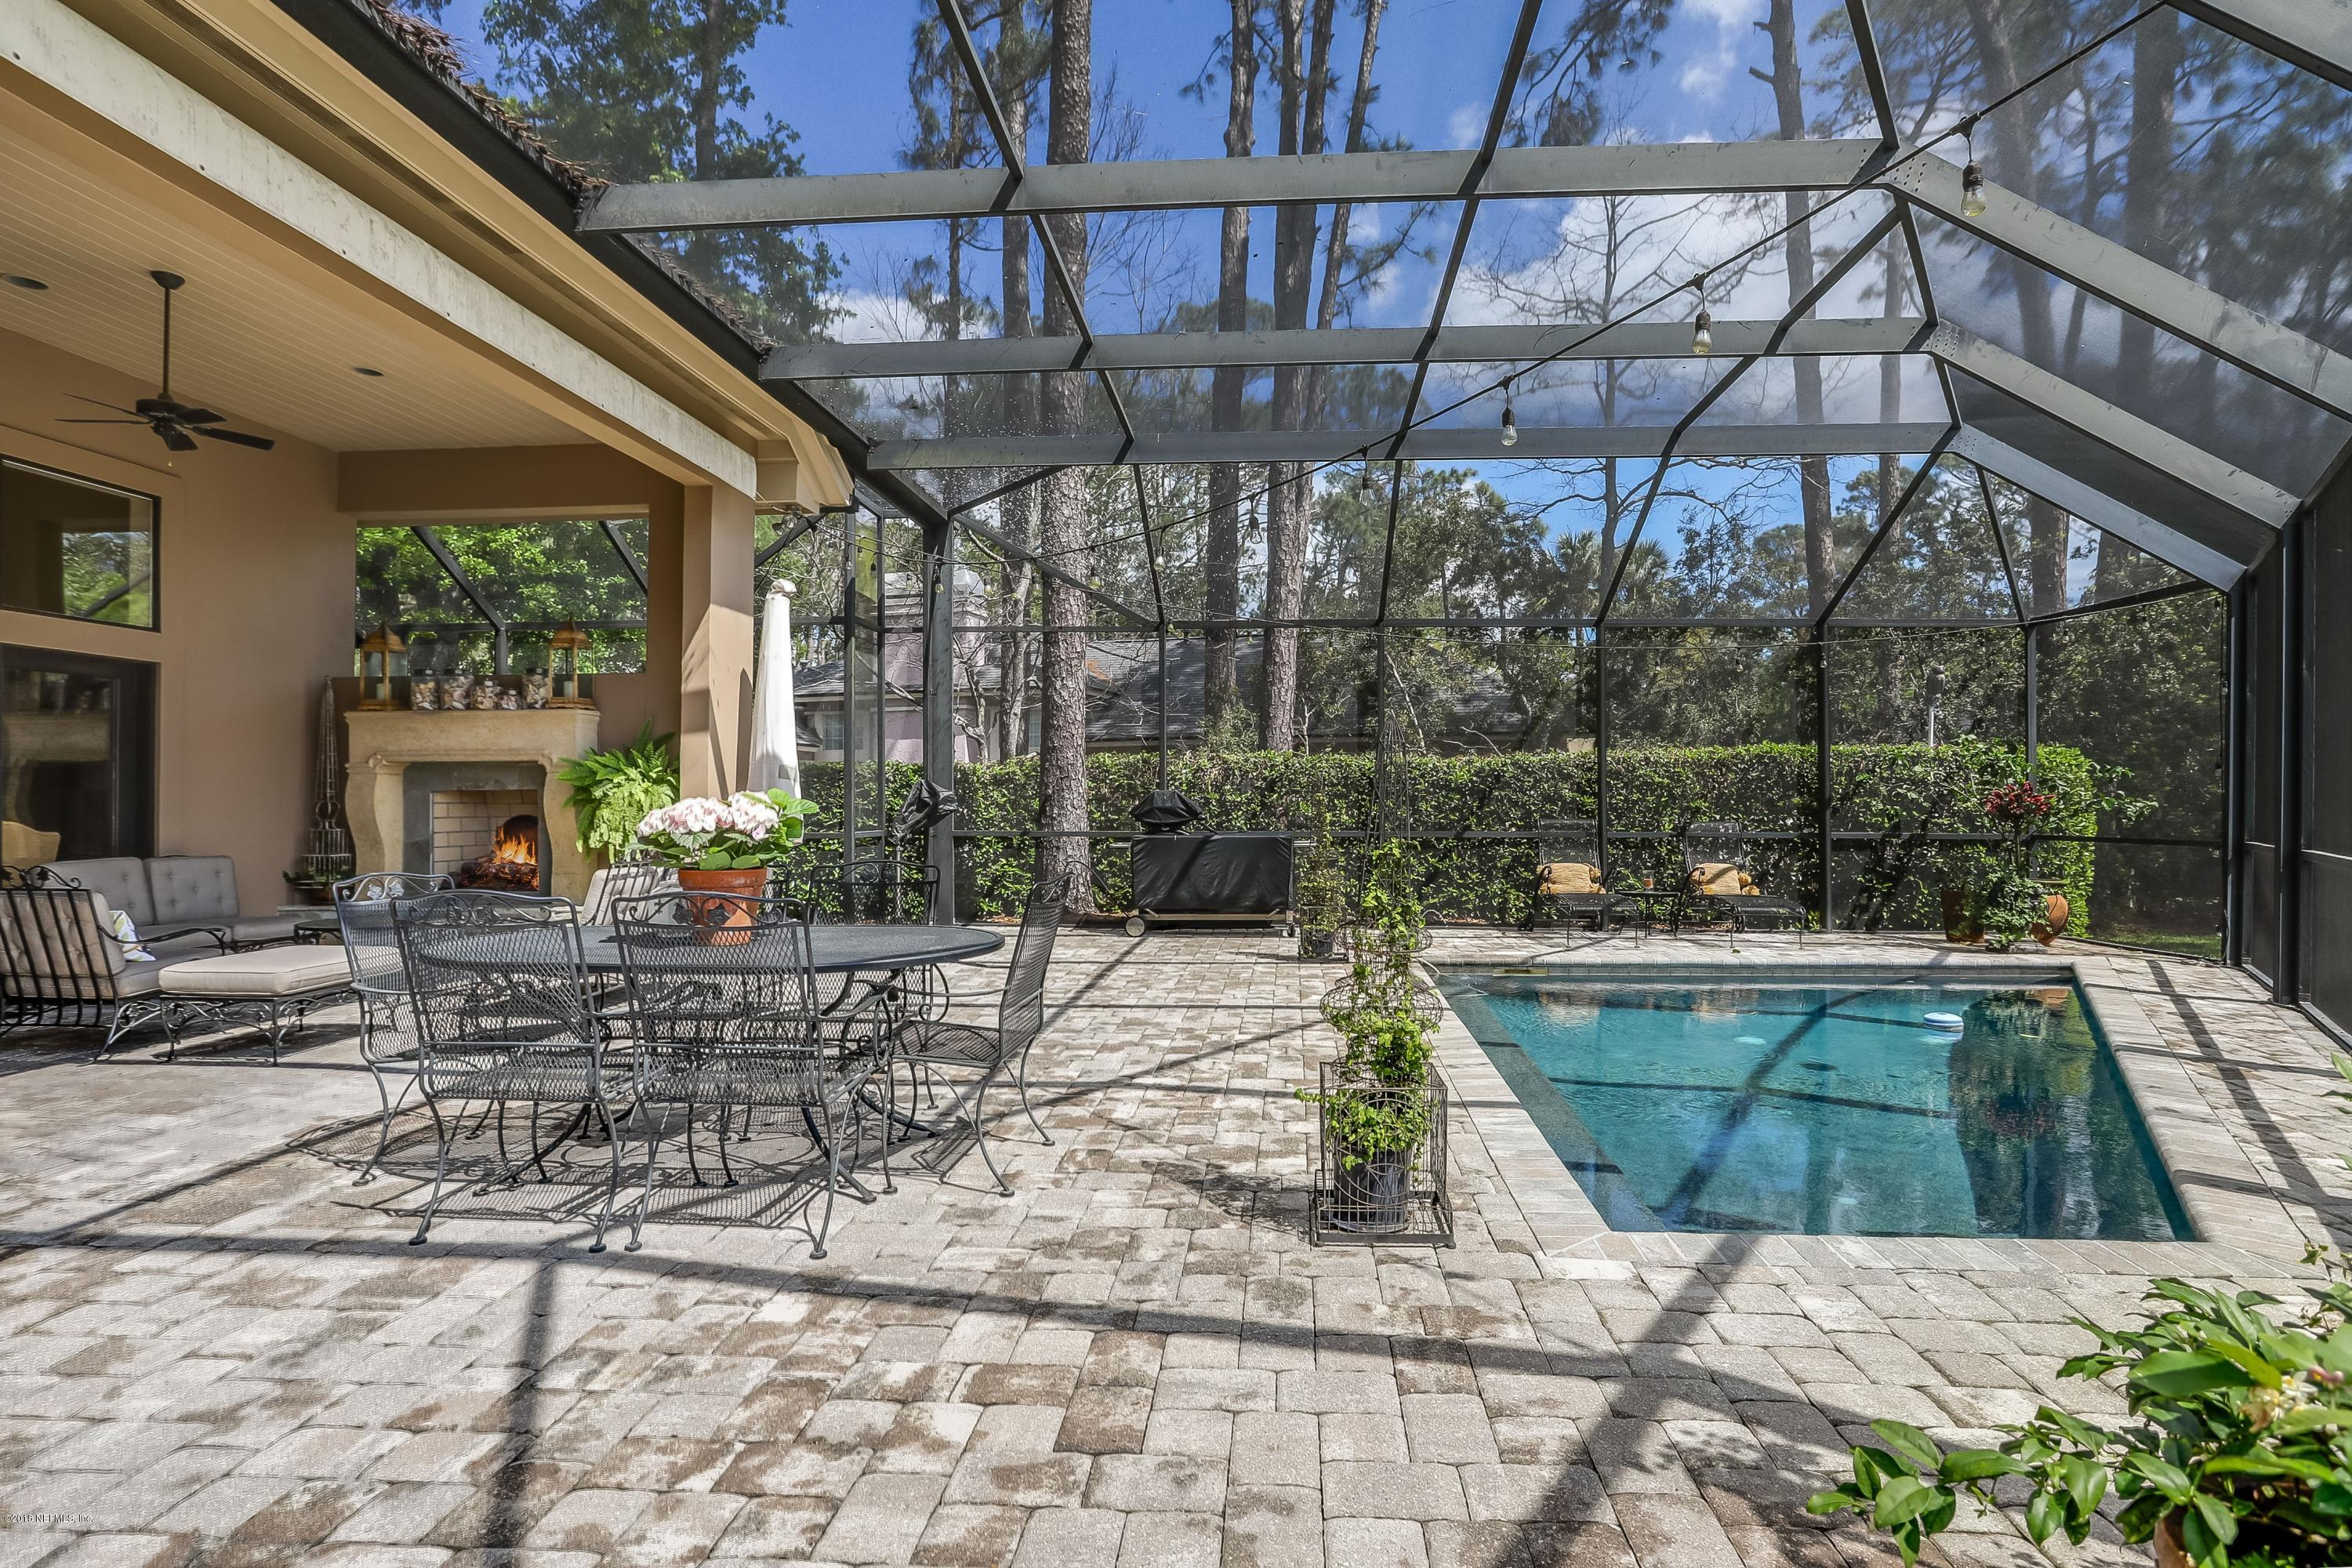 24420 MARSH LANDING, PONTE VEDRA BEACH, FLORIDA 32082, 4 Bedrooms Bedrooms, ,3 BathroomsBathrooms,Residential - single family,For sale,MARSH LANDING,926317